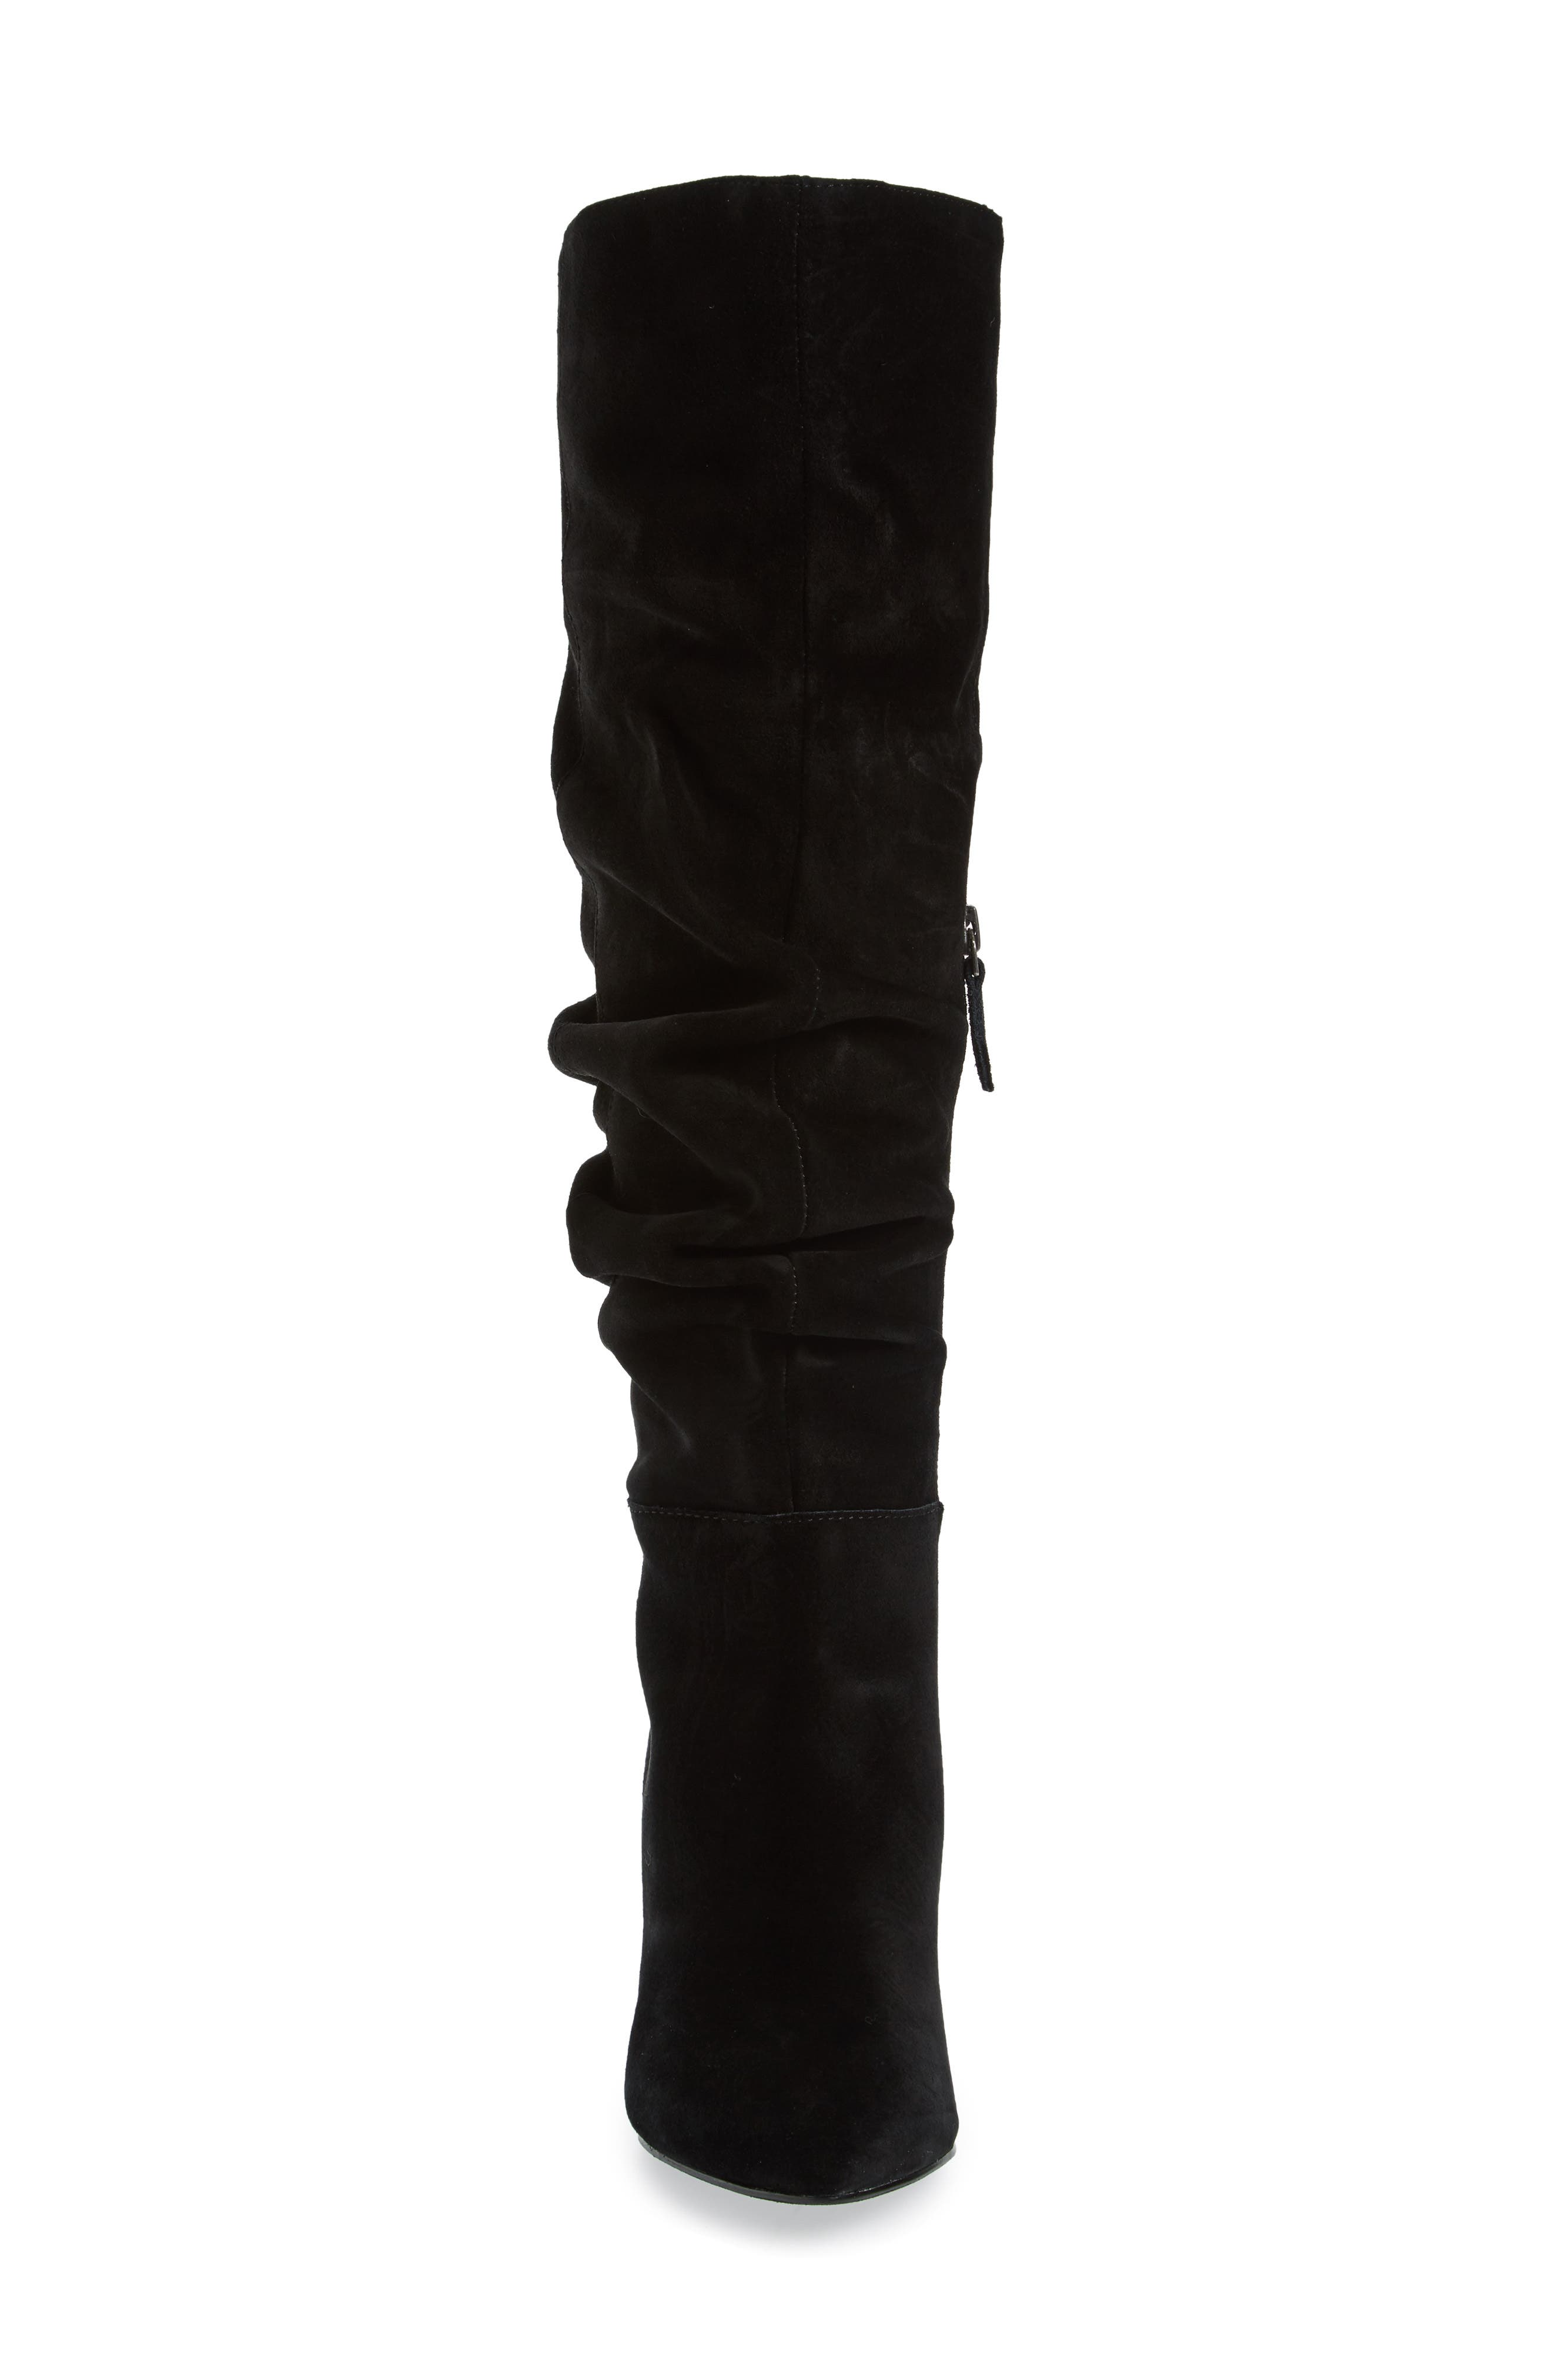 x Something Navy Aiden Knee High Boot,                             Alternate thumbnail 4, color,                             001